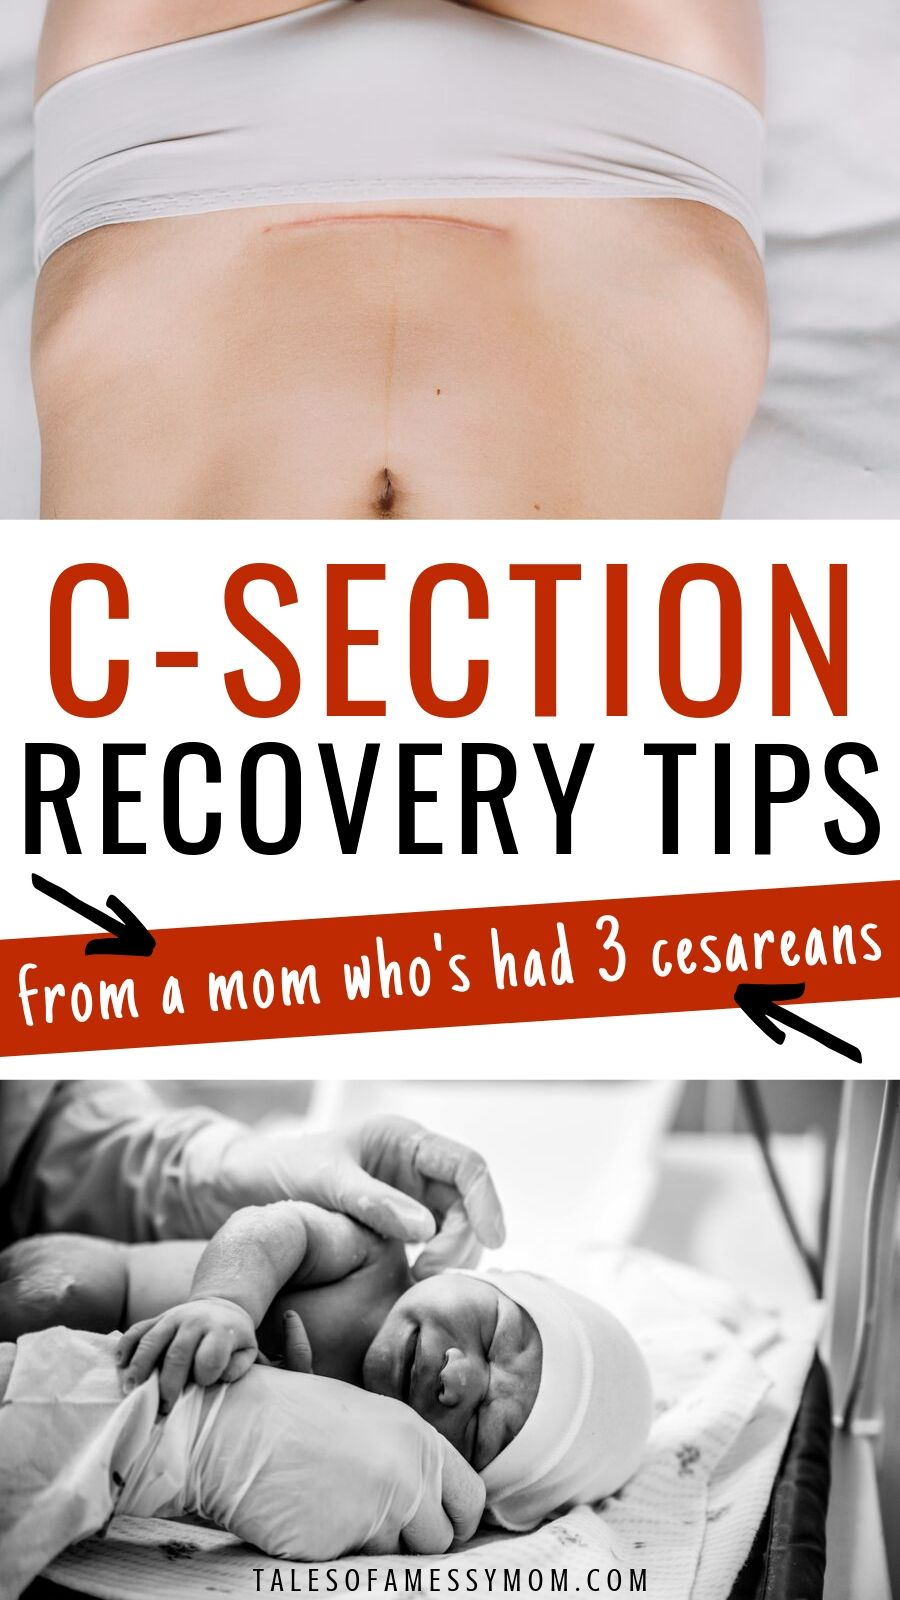 Csection recovery tips for healing after a cesarean c